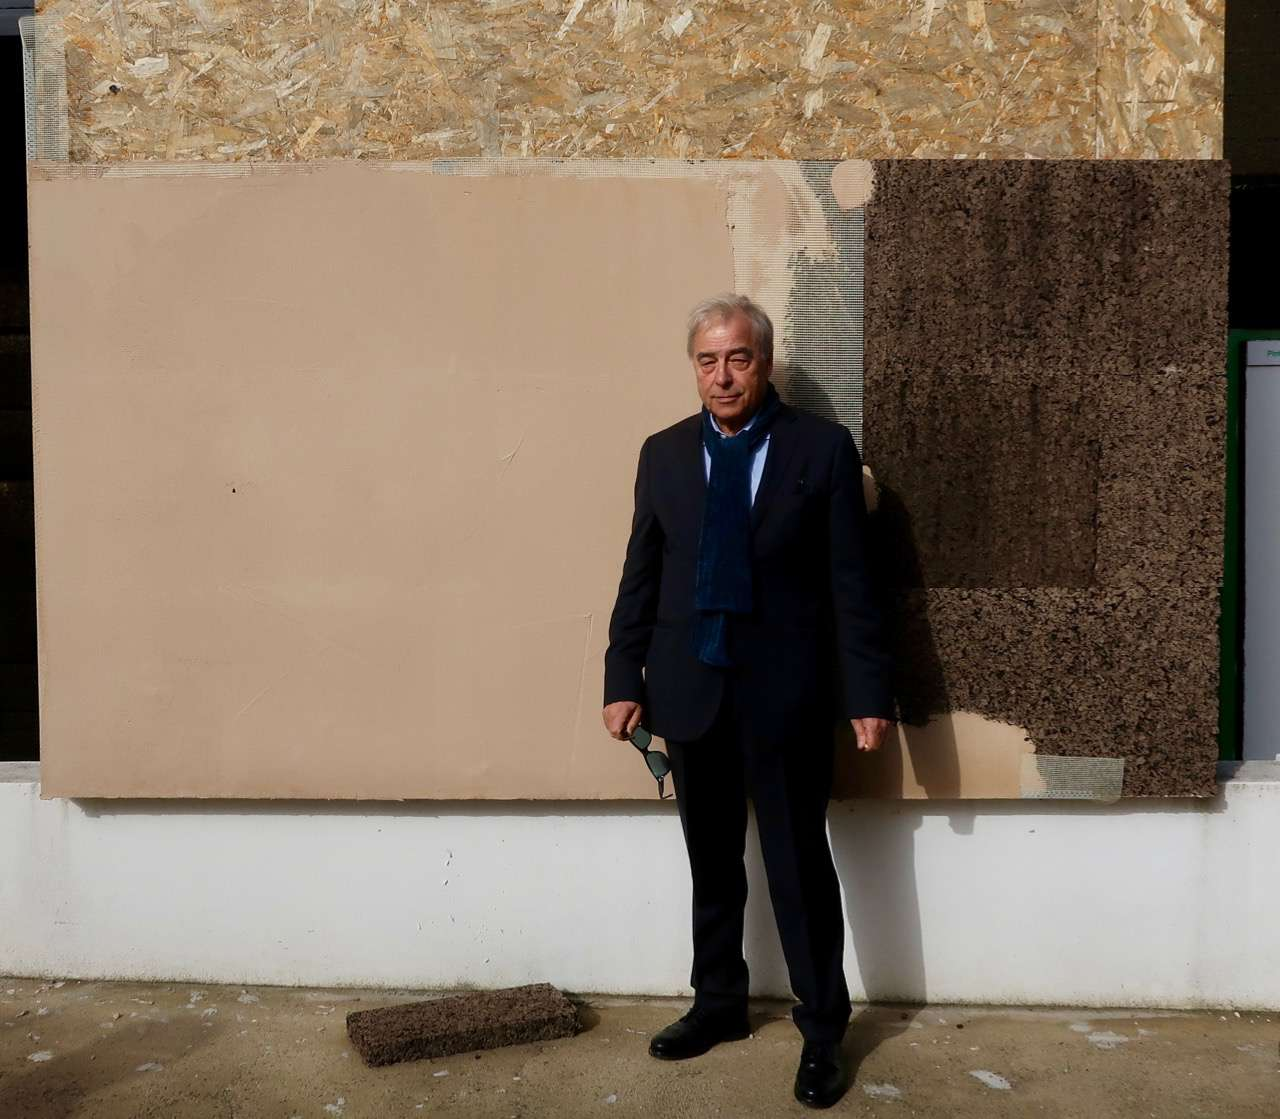 Carlos Manuel in front of wall